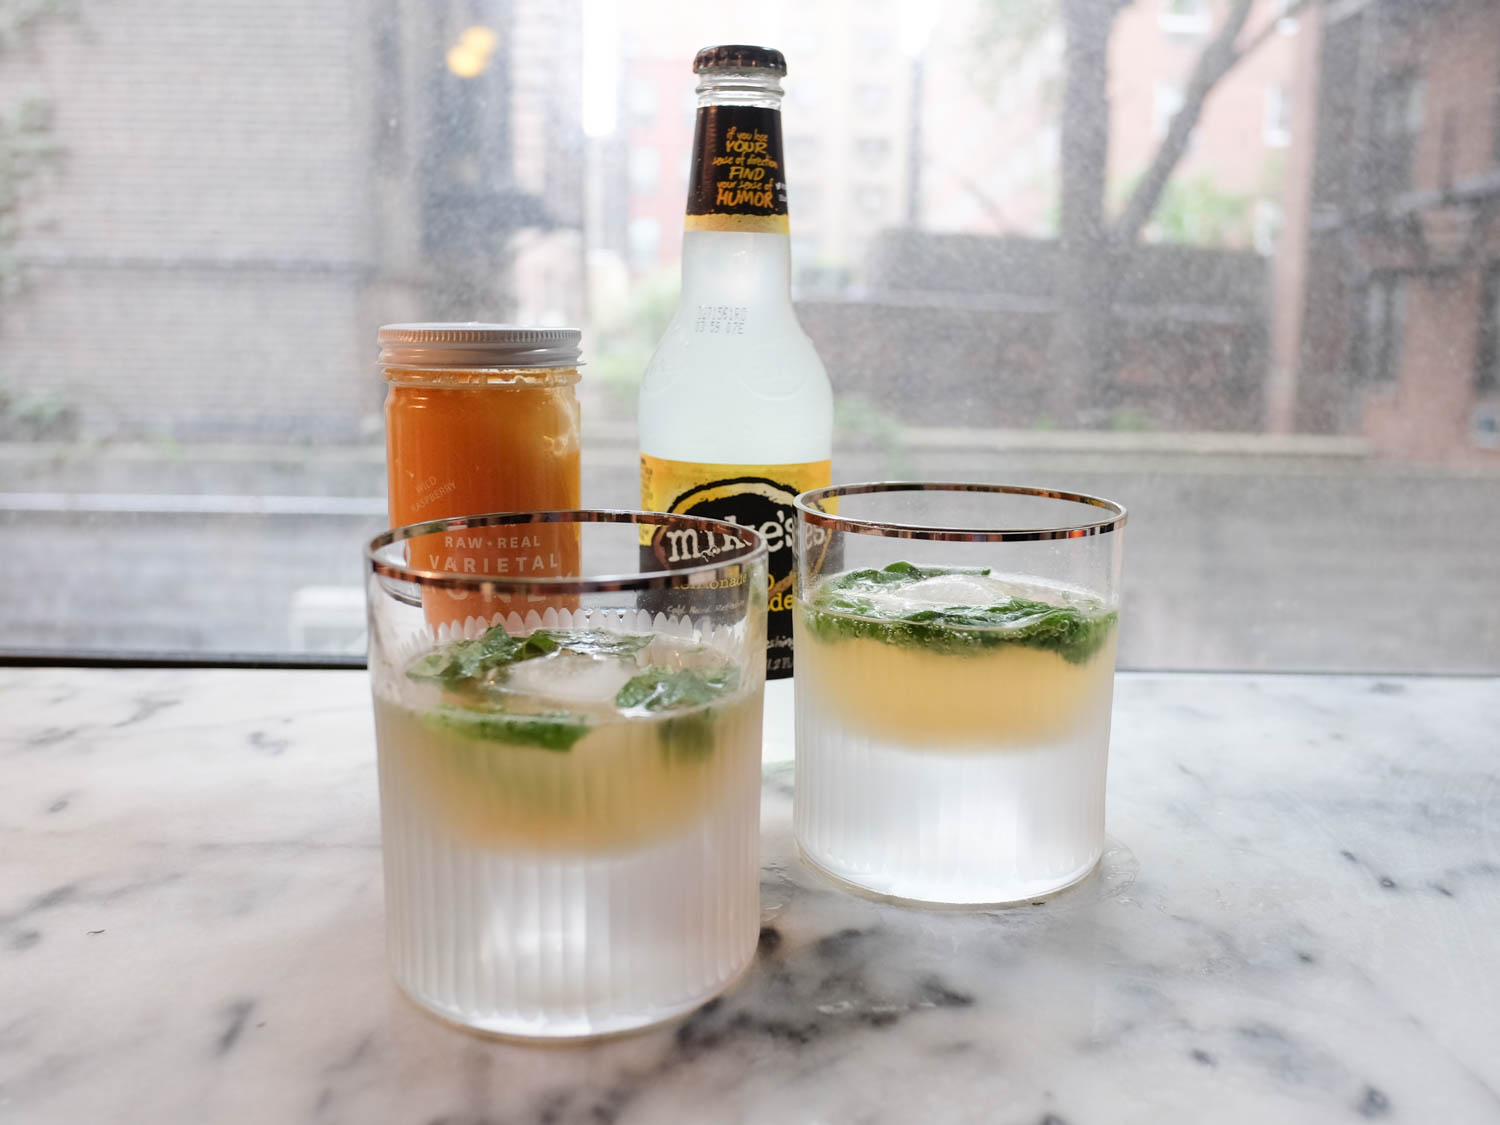 mikes hard lemonade brunch cocktail recipes 13